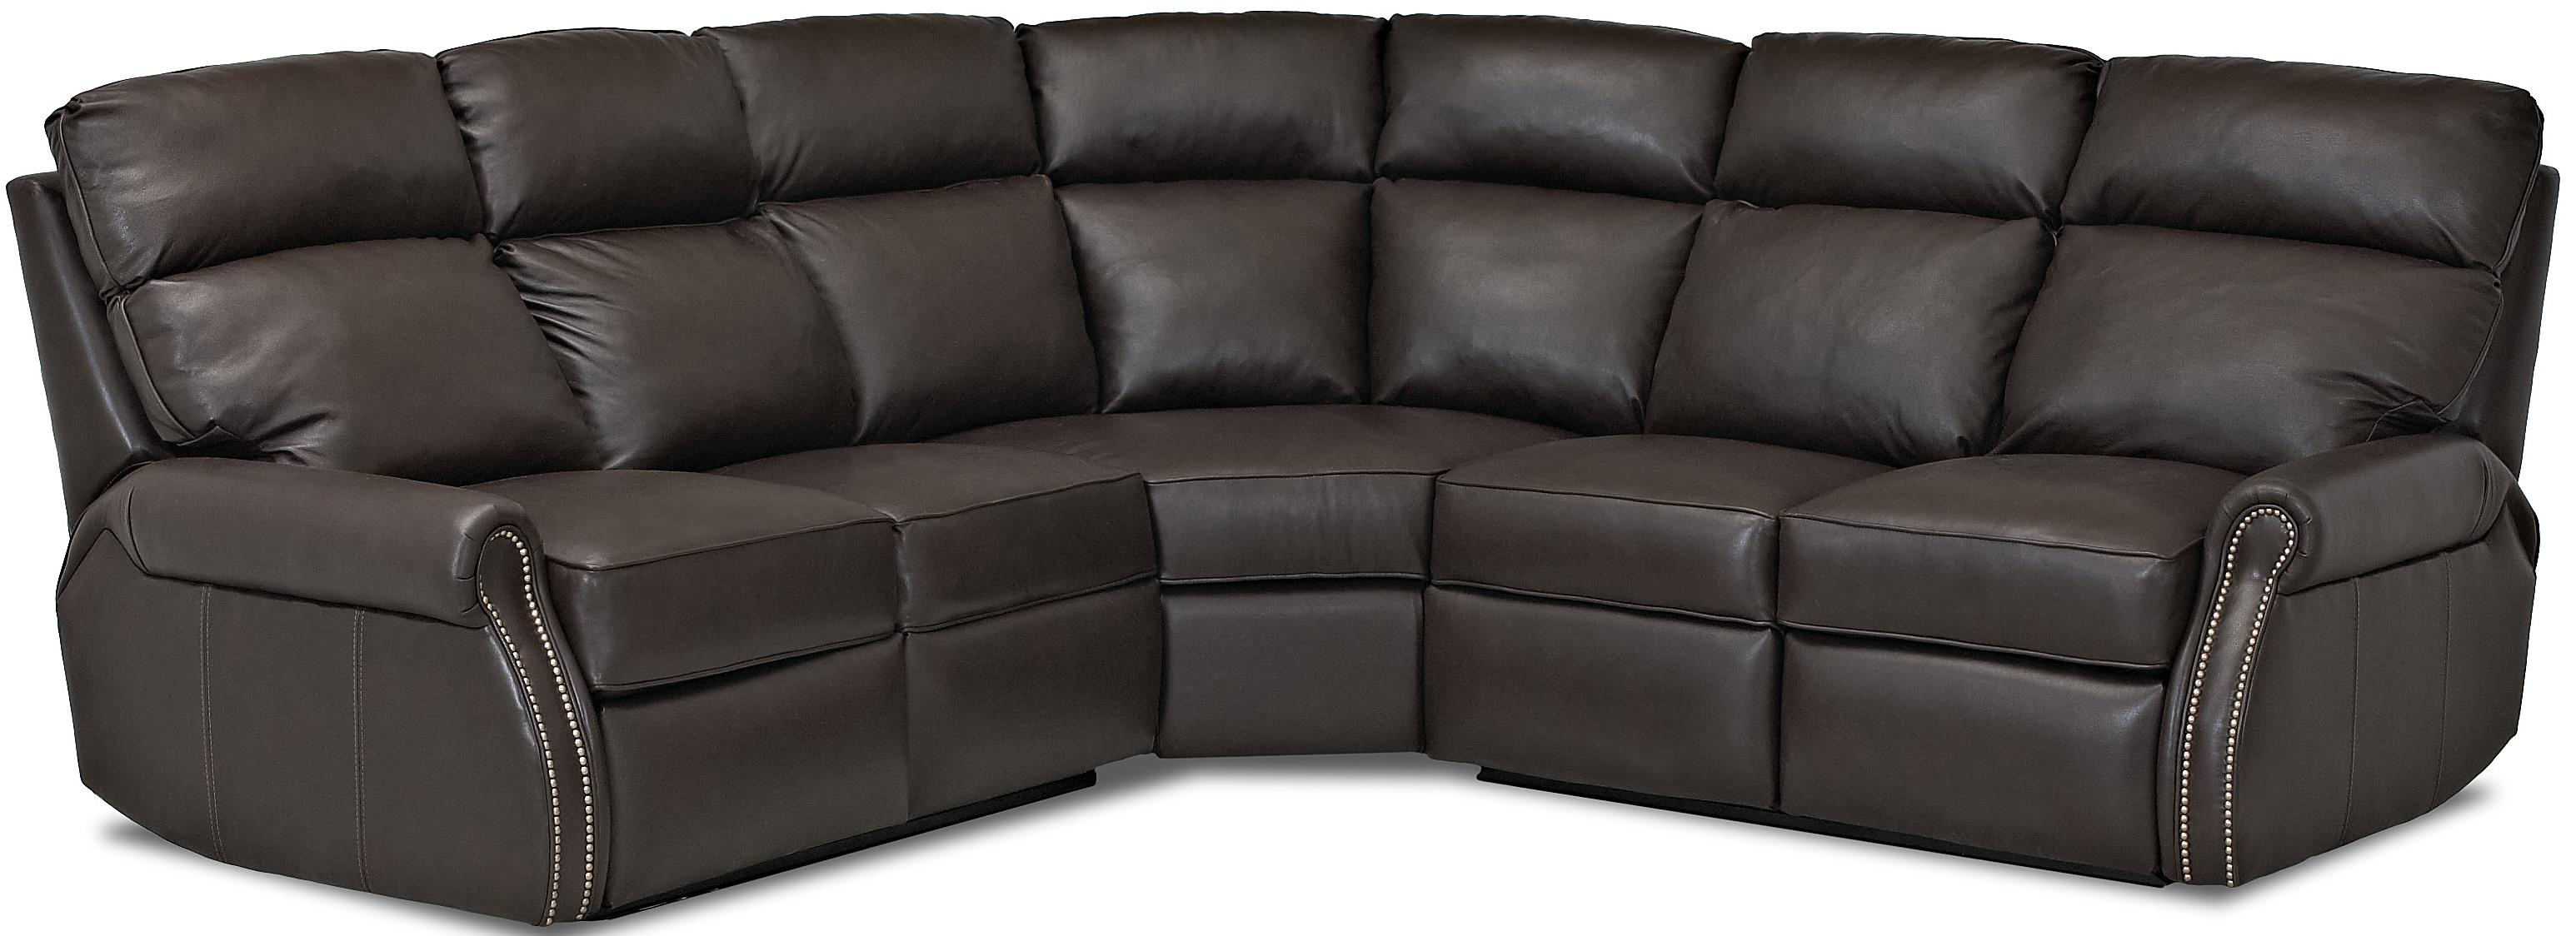 Jackie II Reclining Sectional Sofa by Comfort Design at Lagniappe Home Store